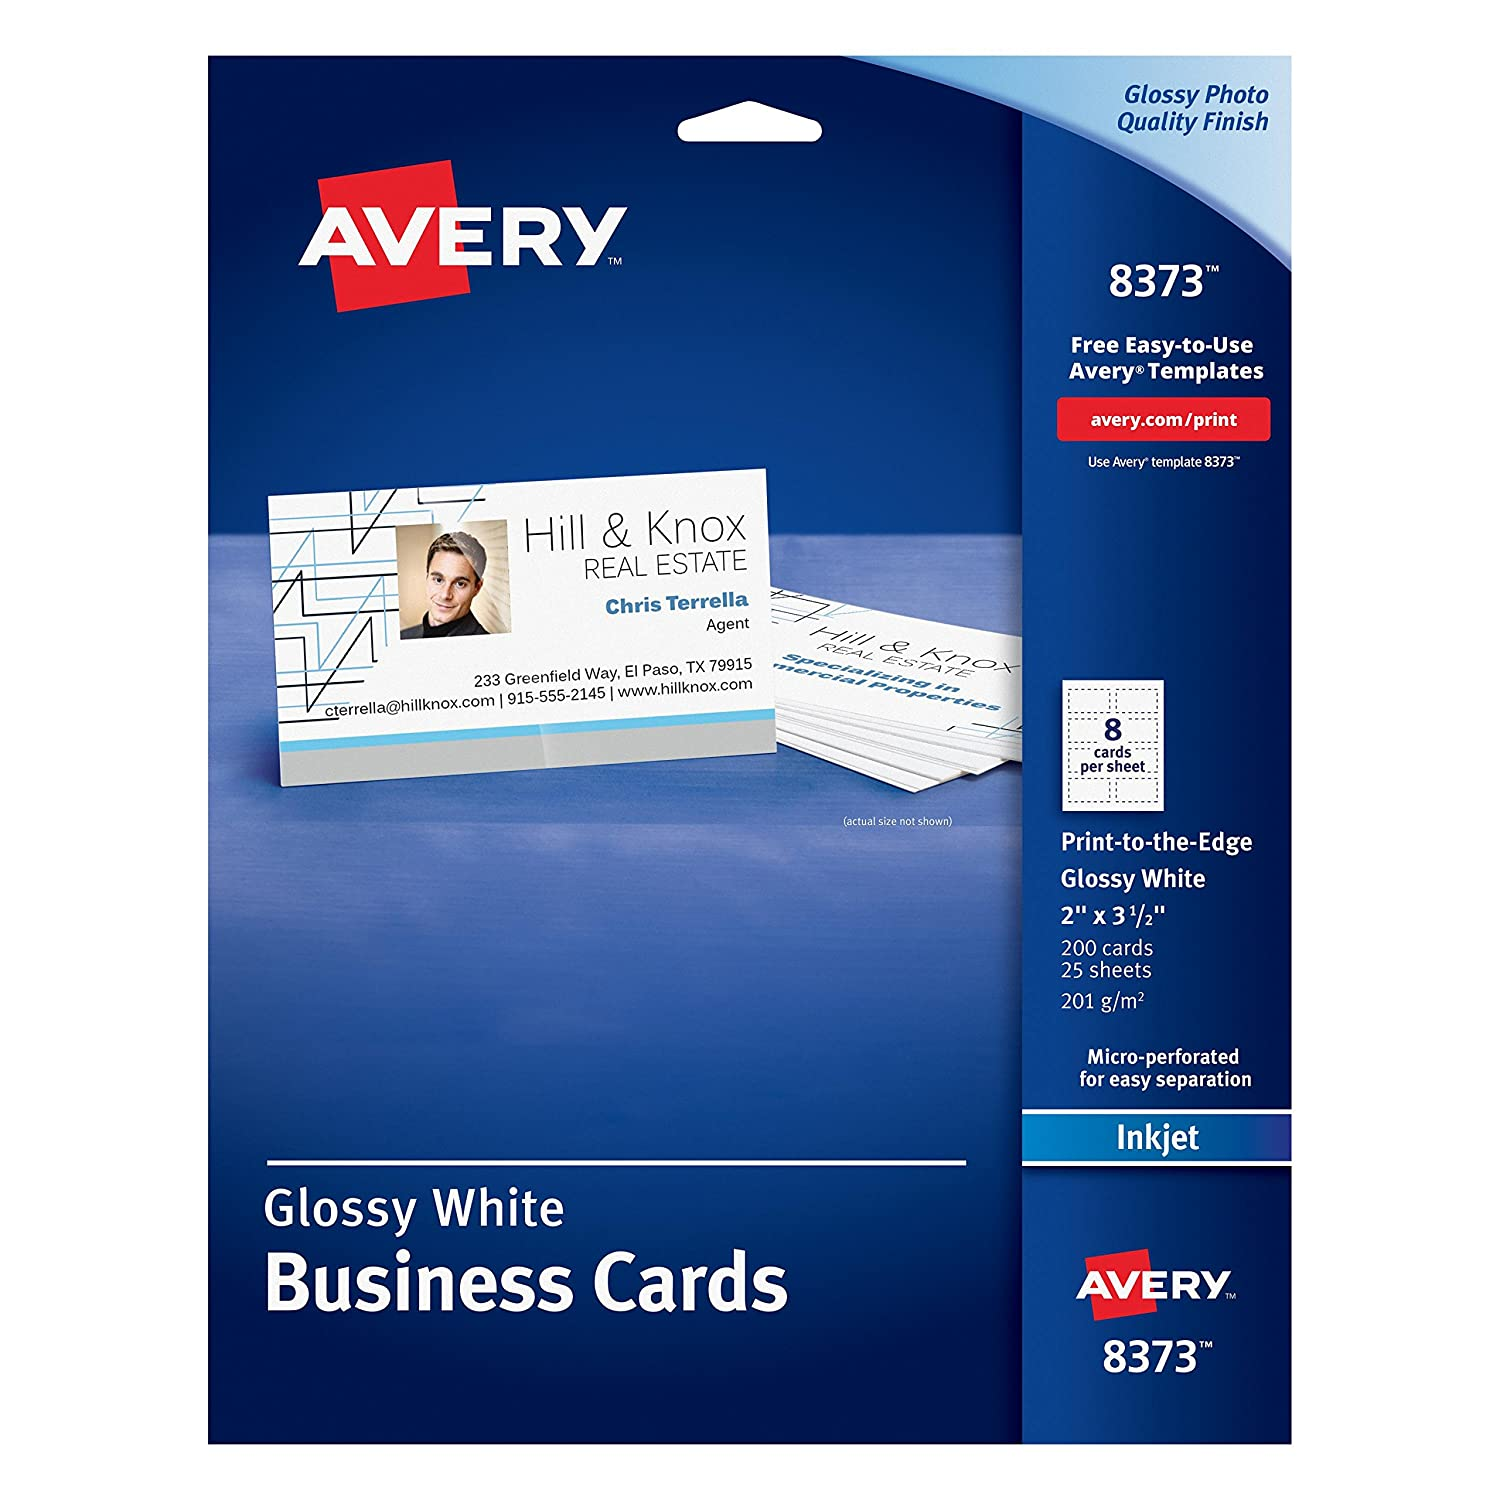 Color printing el paso tx - Amazon Com Avery Glossy Photo Quality Business Cards For Inkjet Printers 8373 Inkjet Printer Paper Office Products